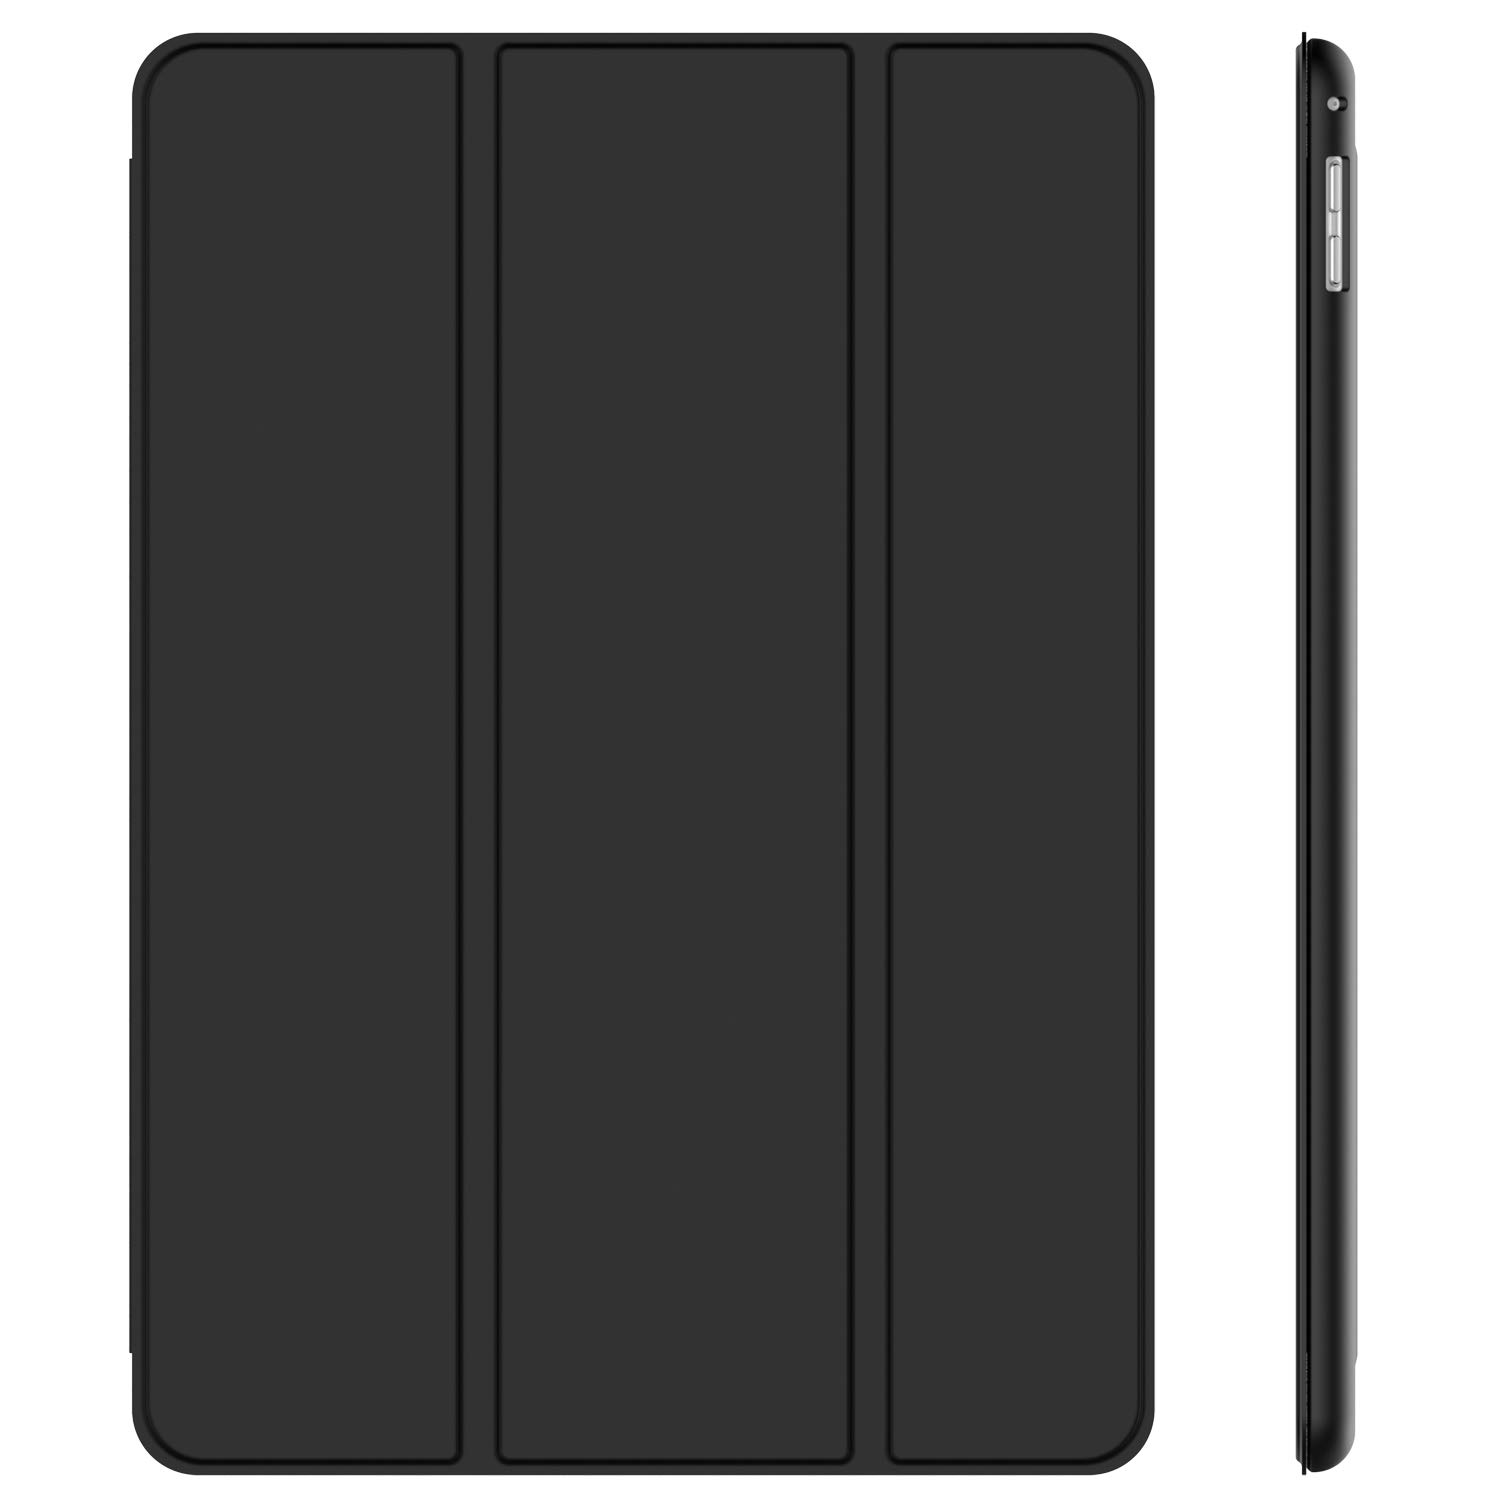 Jetech Case For Ipad Pro 129 Inch 1st And 2nd Generation 2015 And 2017 Model Auto Wakesleep Black